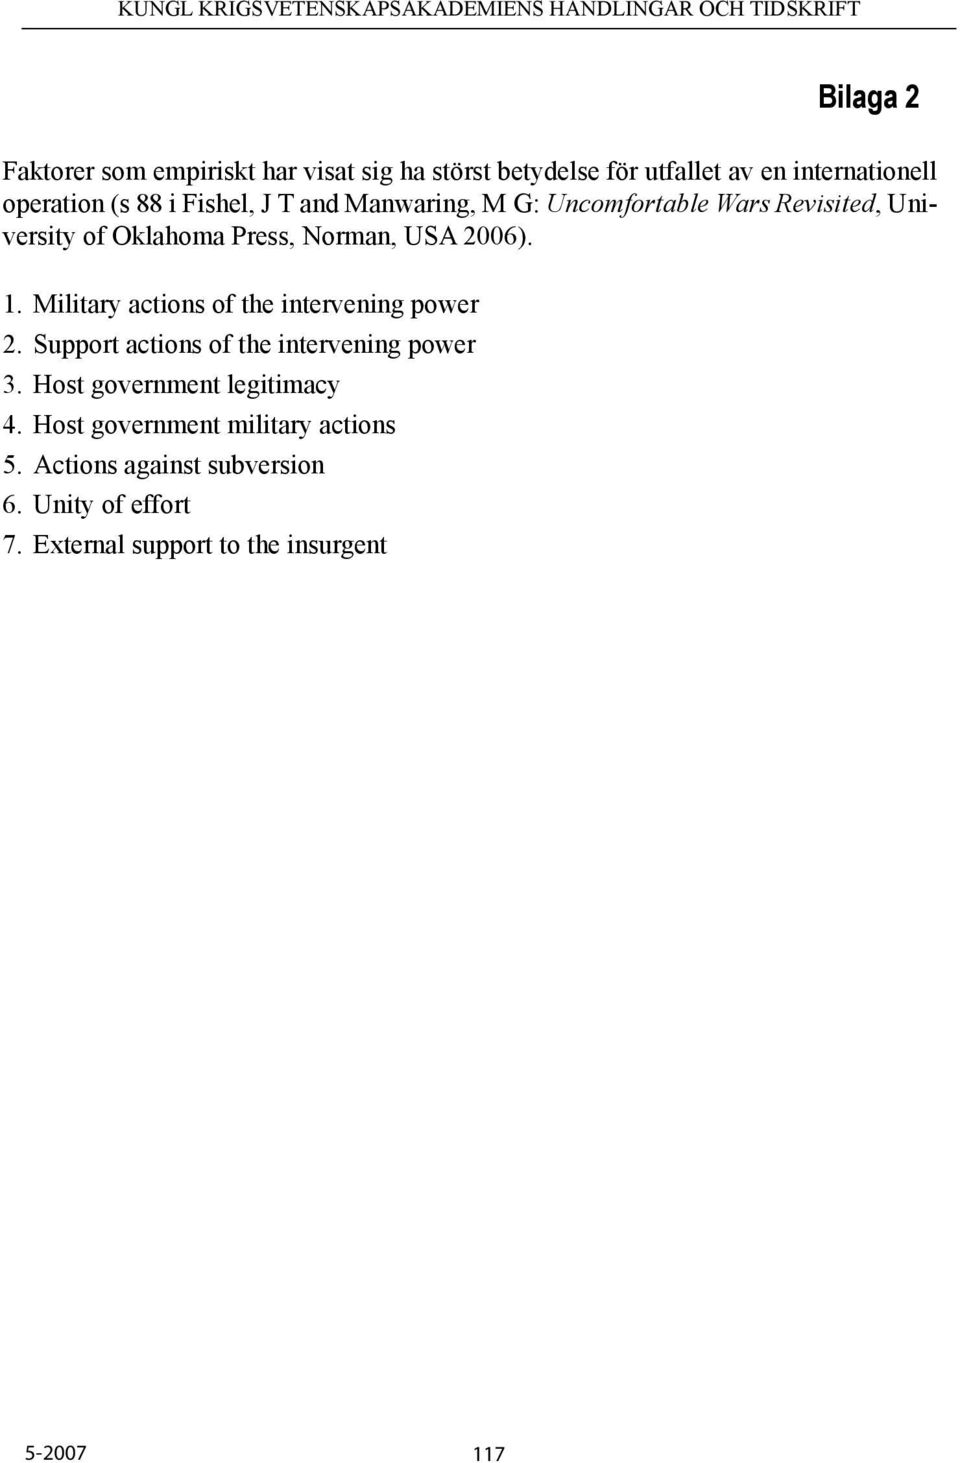 Military actions of the intervening power 2. Support actions of the intervening power 3. Host government legitimacy 4.